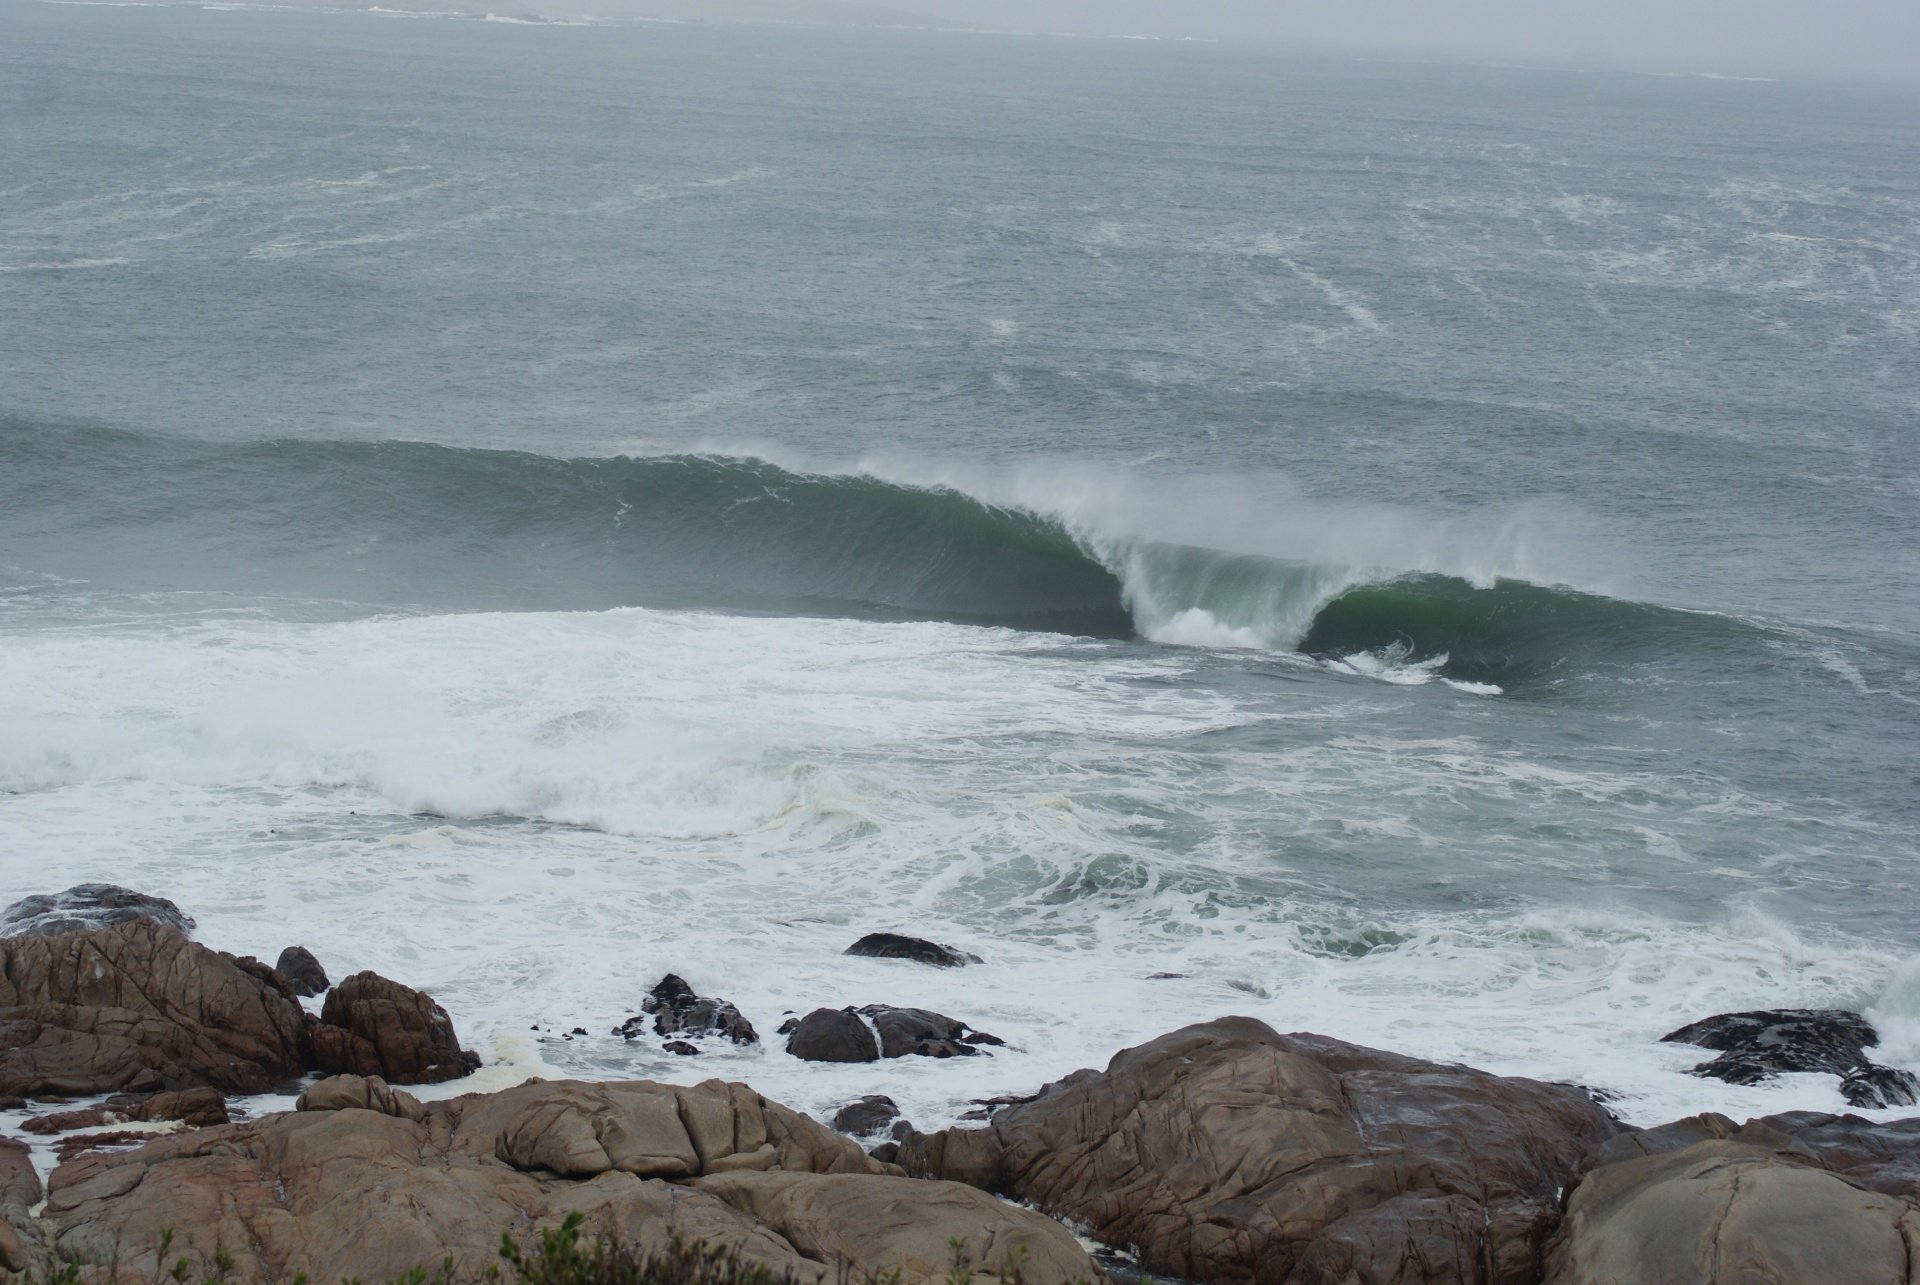 Eggy's photo of Yzerfontein